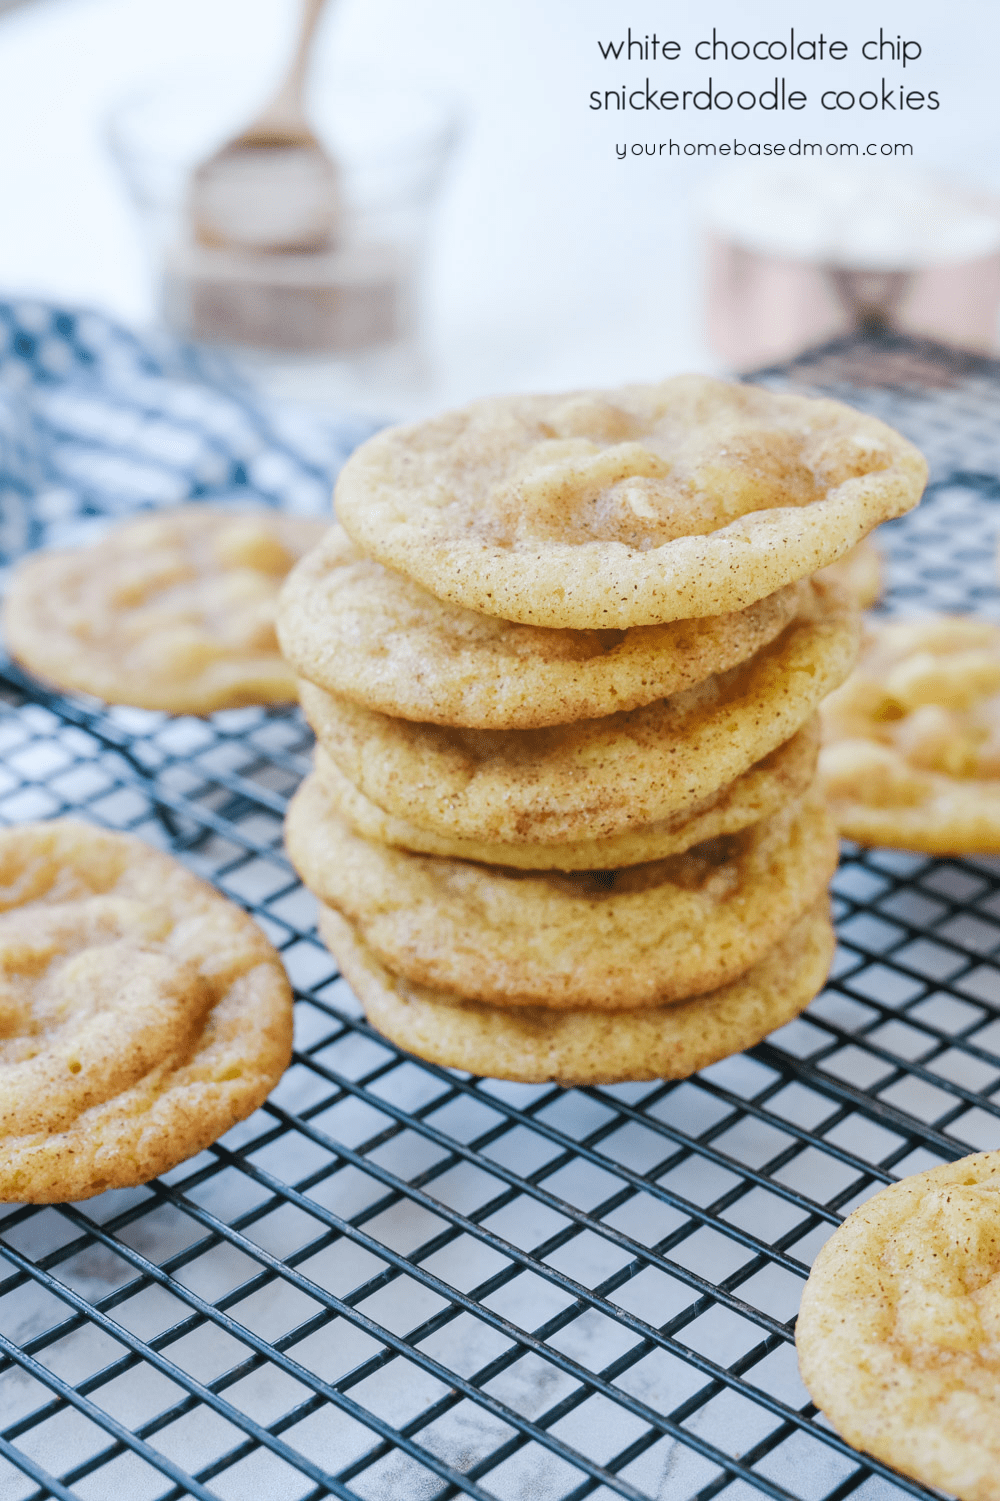 pile of white chocolate chip snickerdoodles